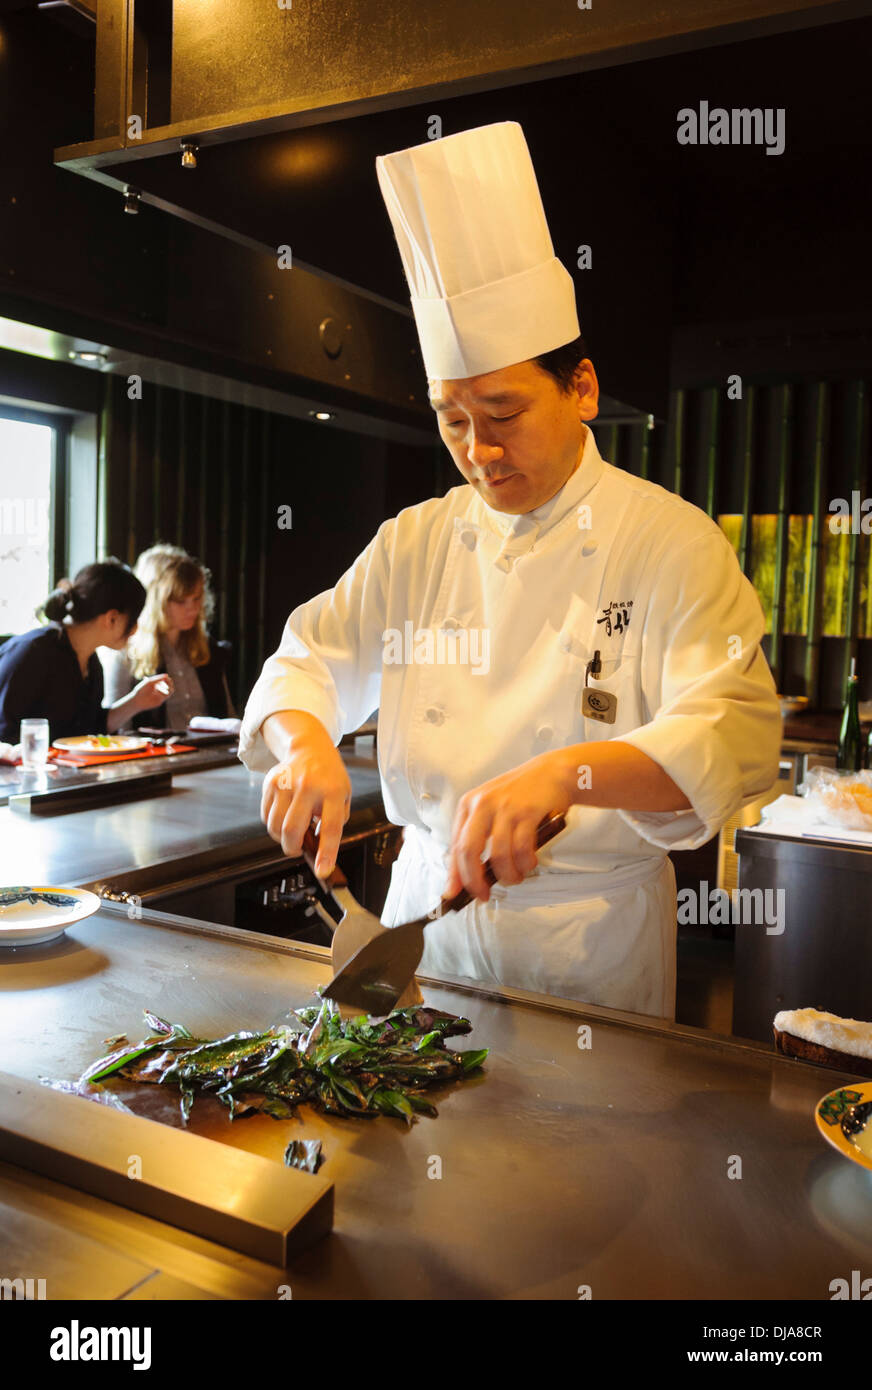 Japanese chef at work in a restaurant, chopping and cooking green vegetables on a hot plate in the open kitchen. - Stock Image